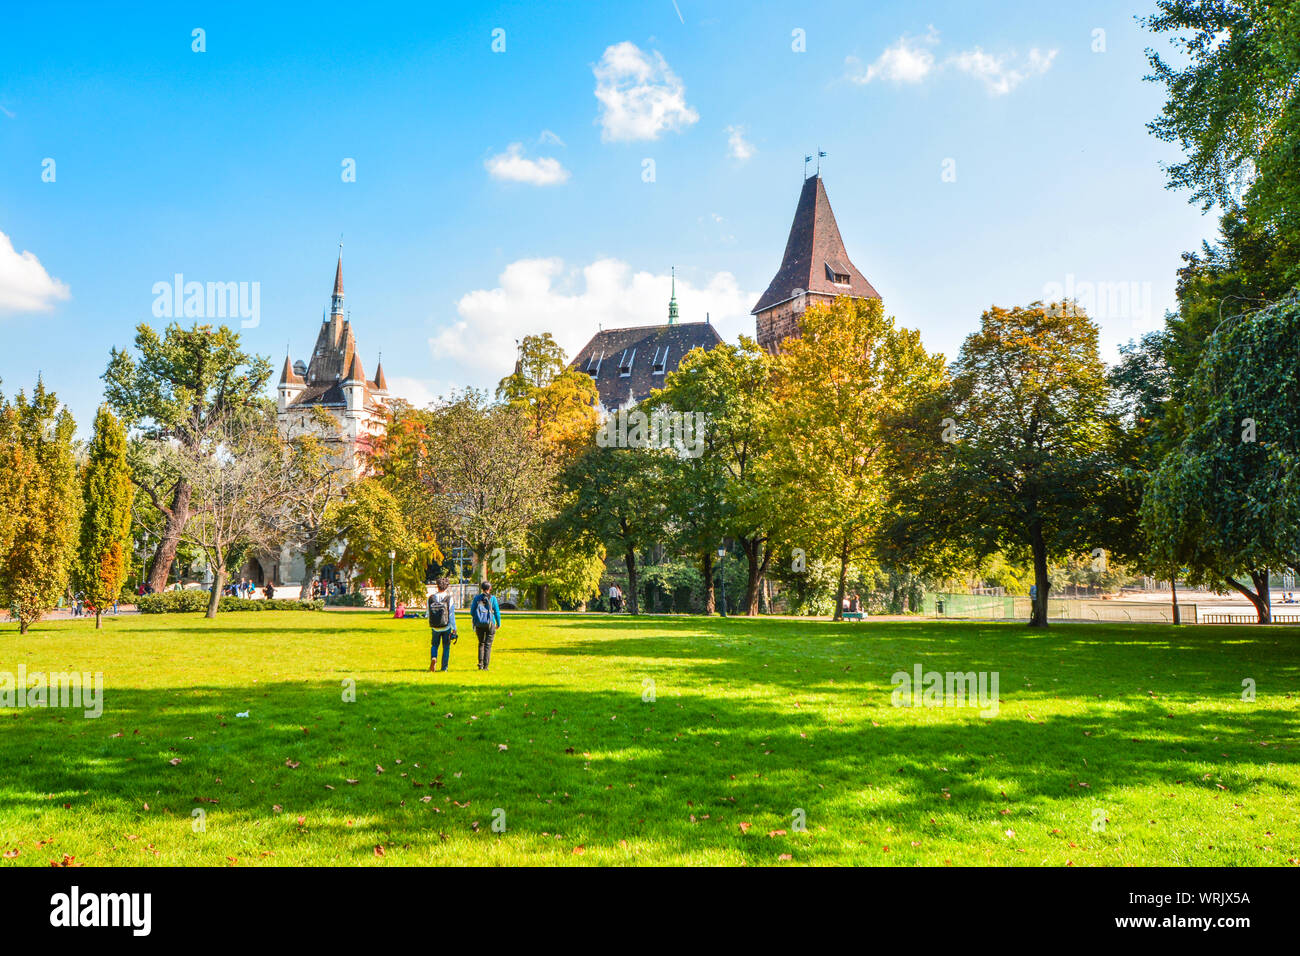 A young couple stops to admire the towers of Vajdahunyad Castle inside the City Park on a clear autumn day in Budapest, Hungary Stock Photo